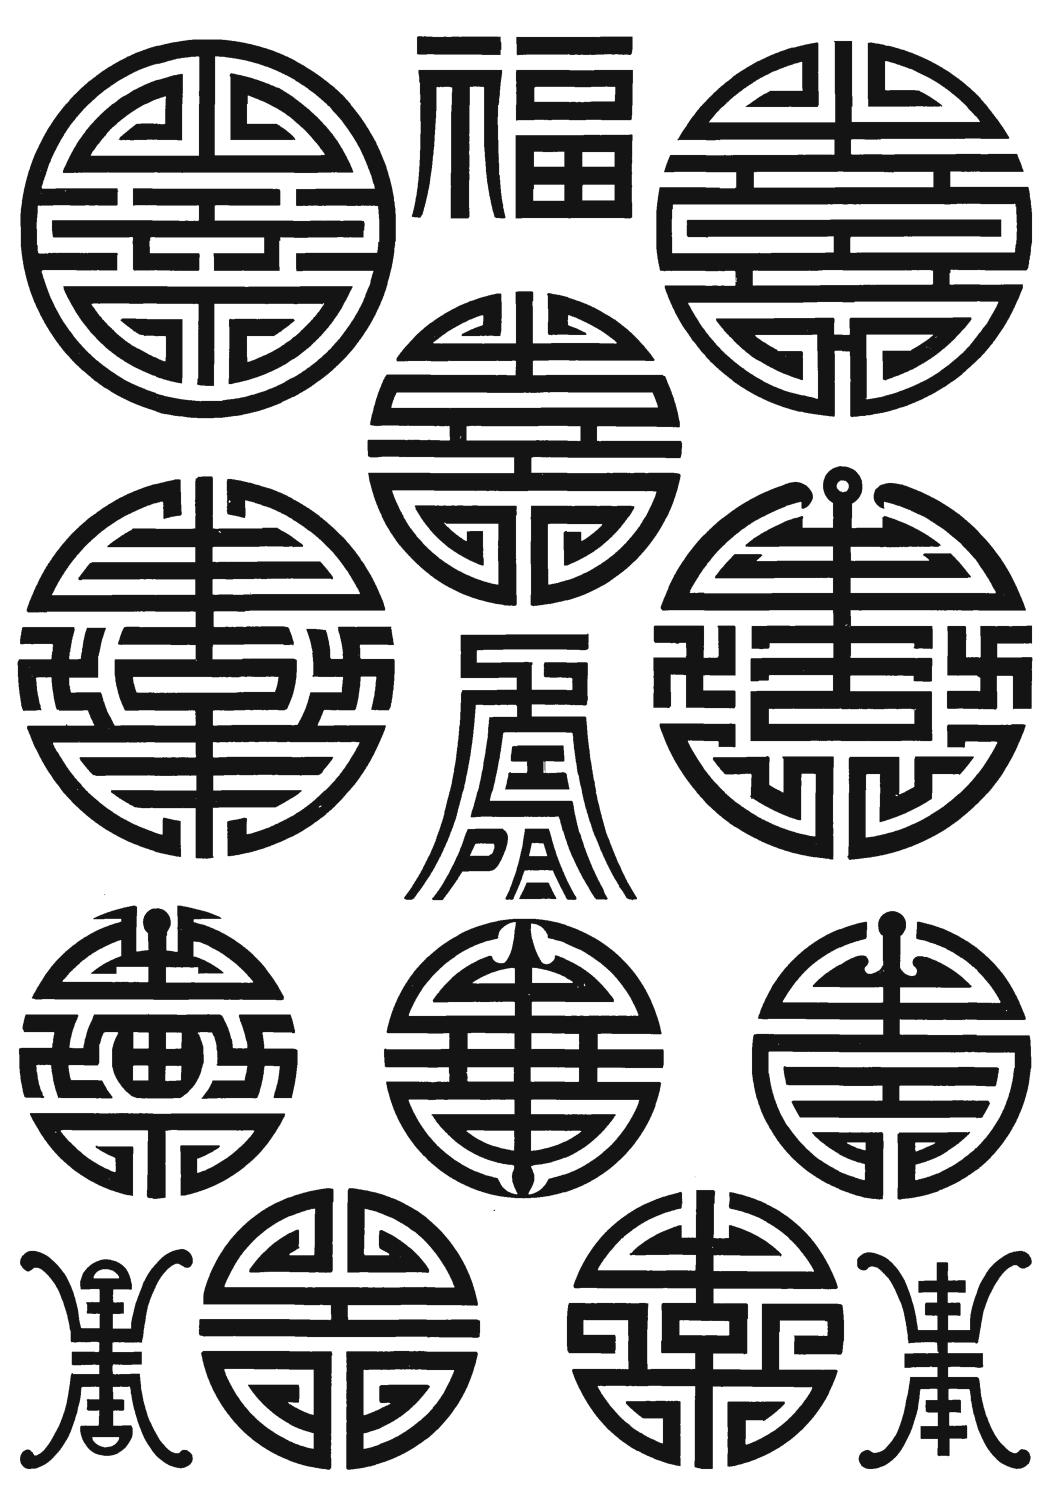 Httpk tattooimagesk tattoo02k tattoo02 172g jason chinese shu symbols or symbols of longevity from the book beer robert the encyslopedia of tibetan symbols and motifs buycottarizona Image collections